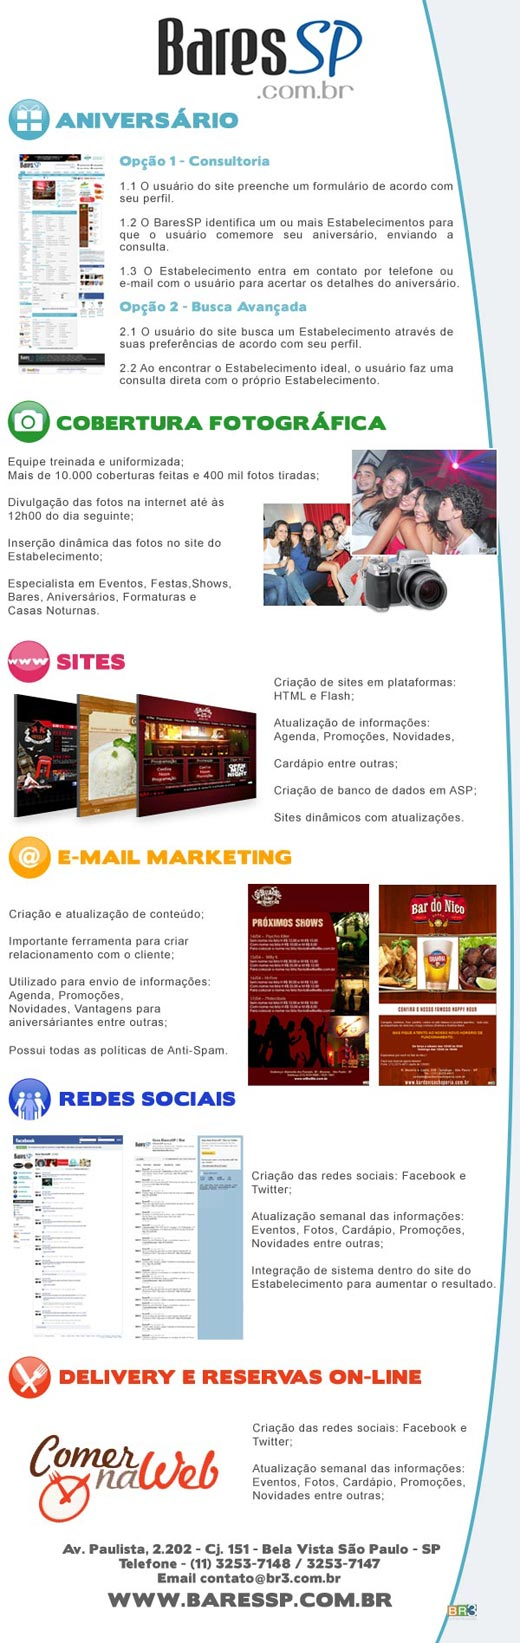 E-mail marketing de divulgação